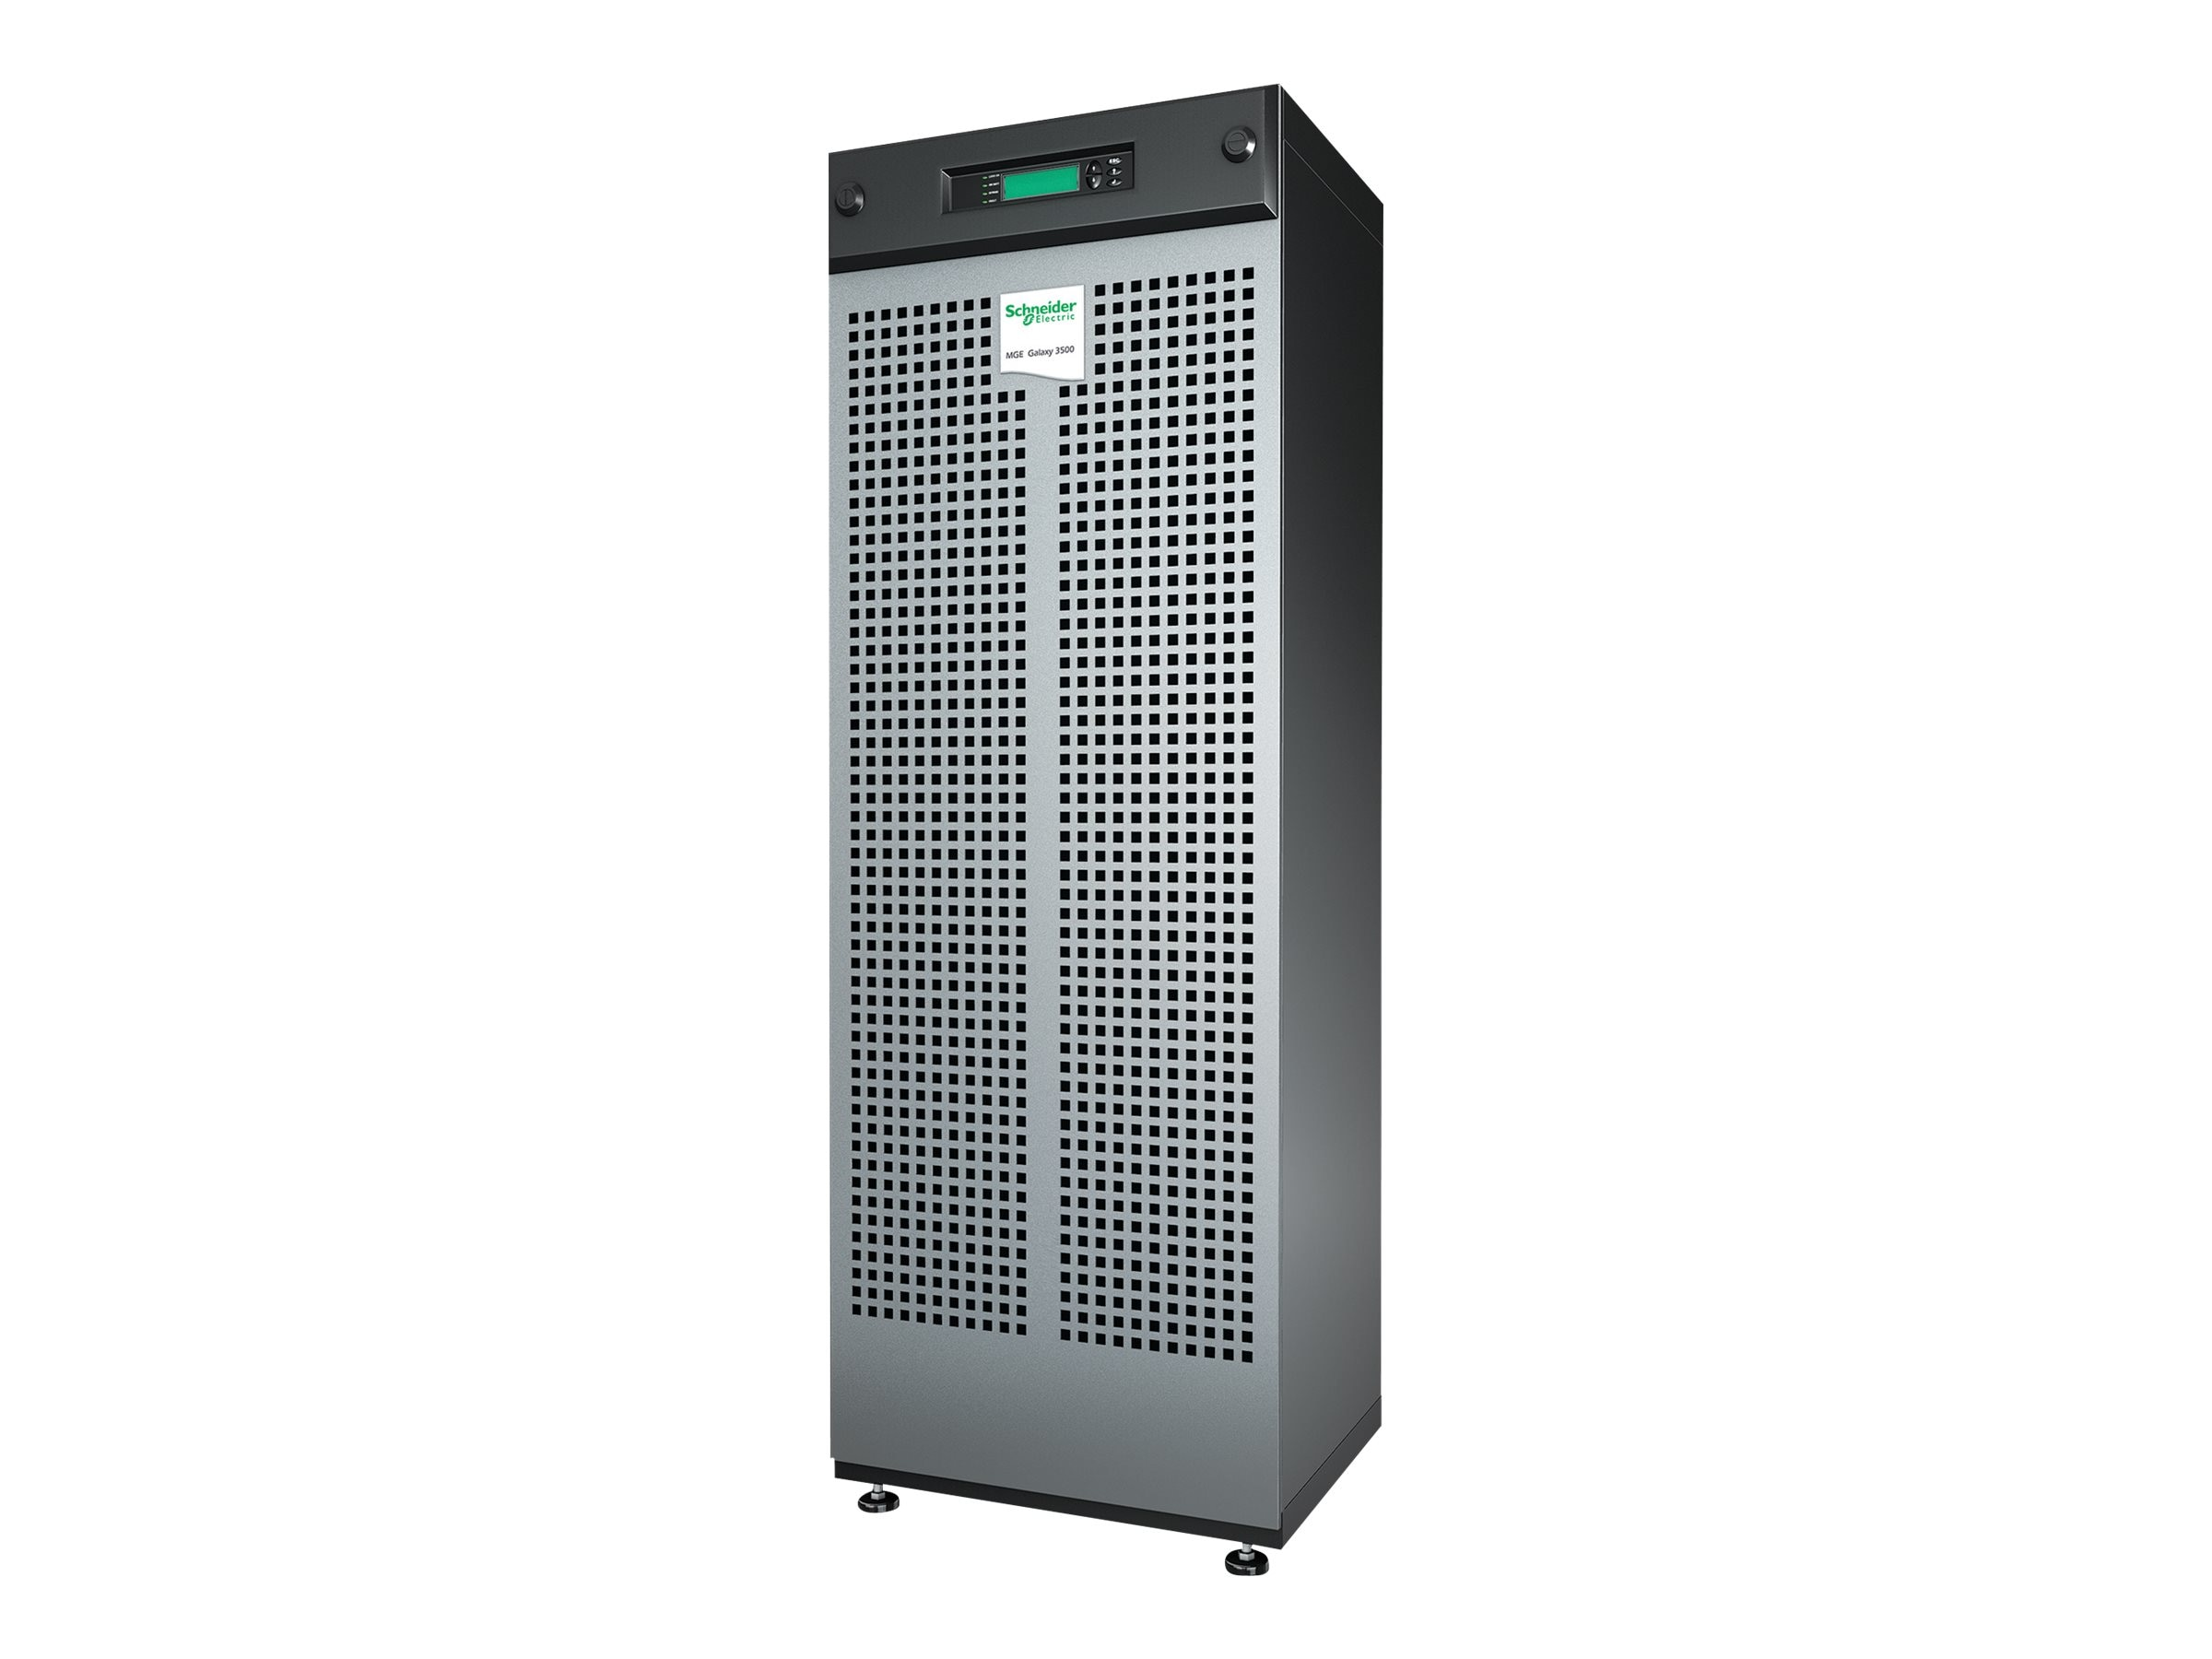 APC Galaxy 3500 20kVA 16kW 208V with (3) Battery Modules Expandable to (4), Start-up 5x8